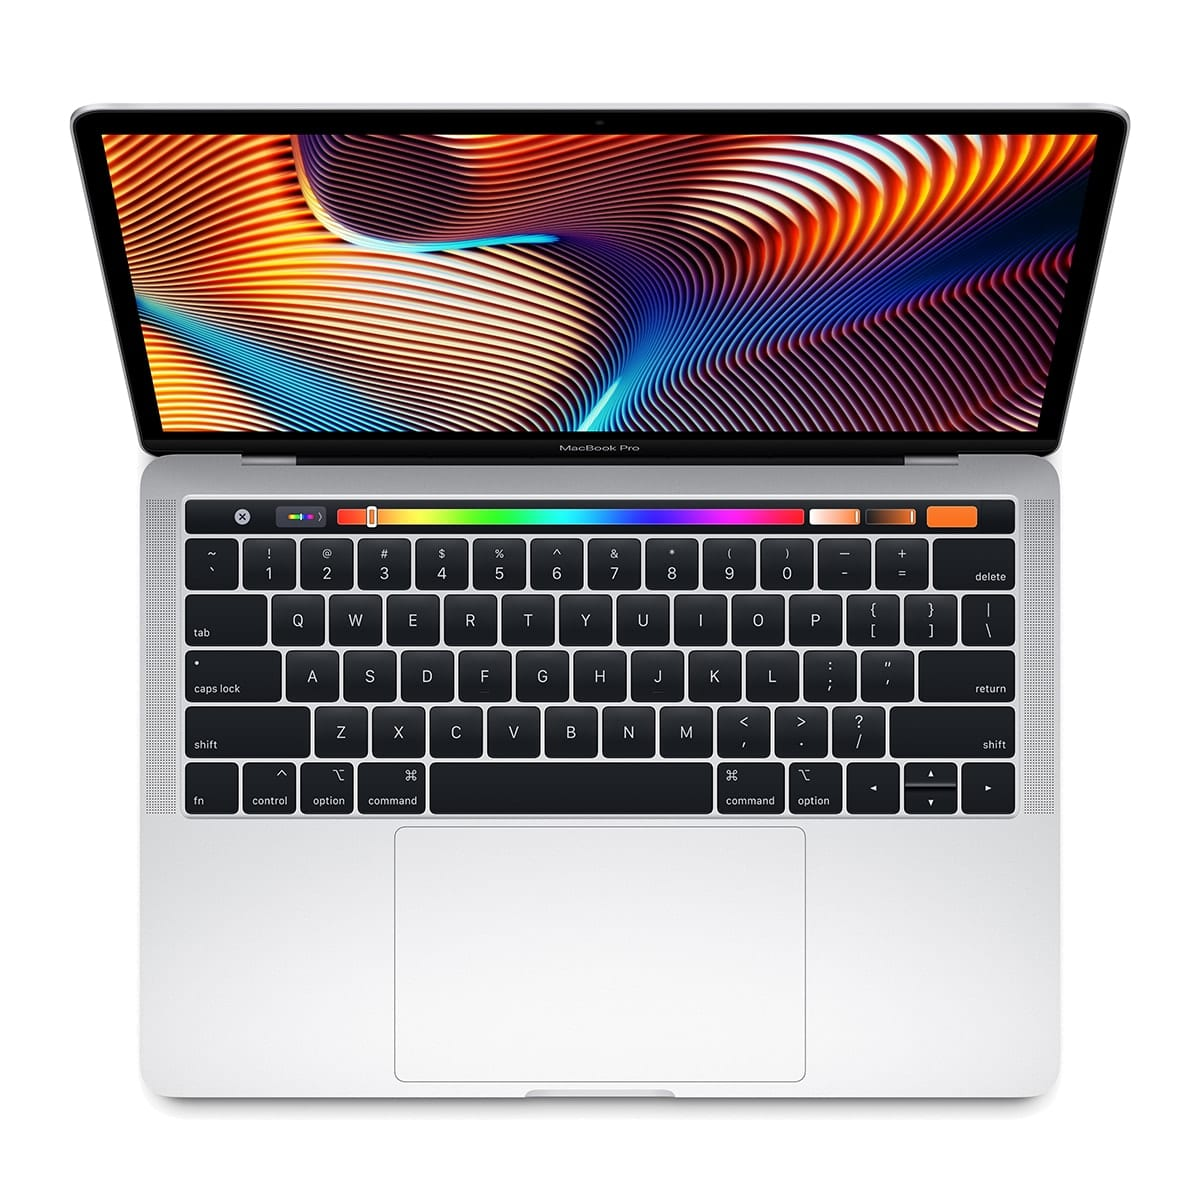 The entry-level 13-inch MacBook Pro features new, more powerful quad-core processors, Touch Bar, Touch ID and more